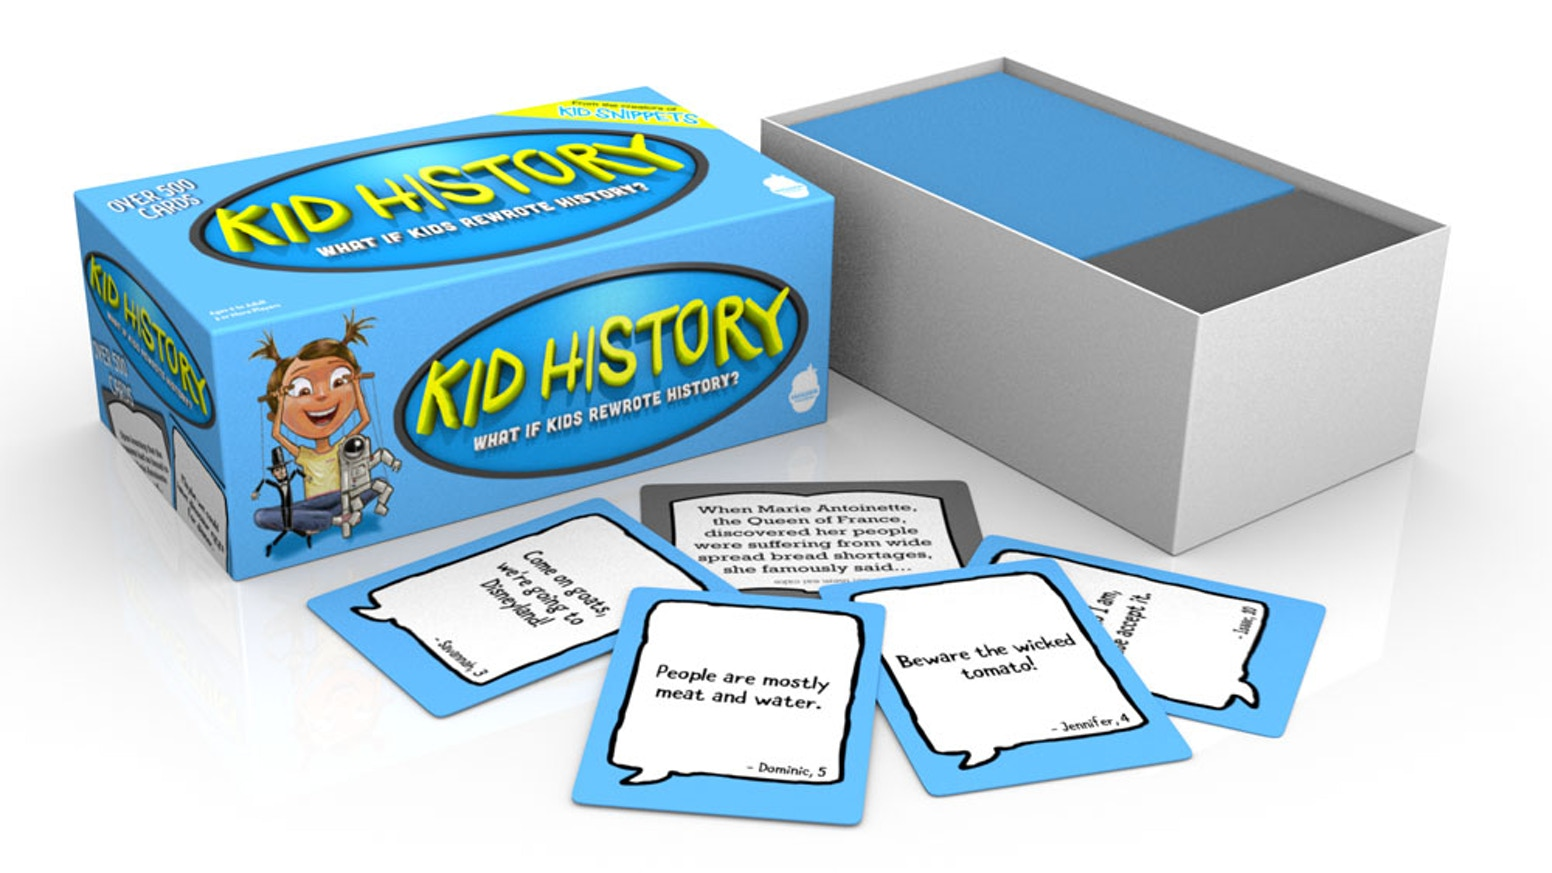 A party game that everyone can enjoy. Your next event will be a hit when the guests rewrite history using cards with quotes from kids.